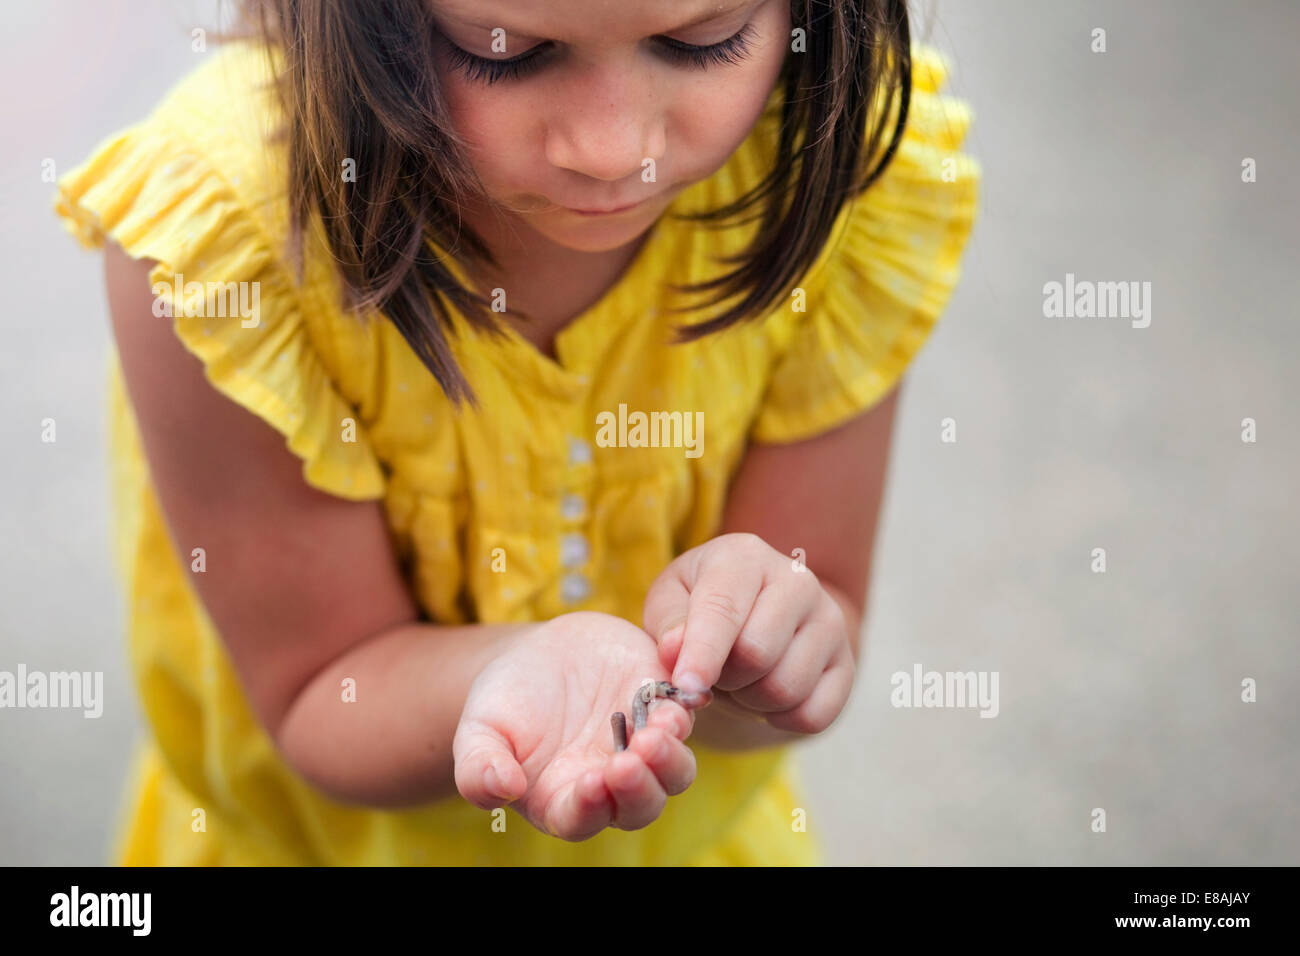 Girl holding and looking down at worm - Stock Image